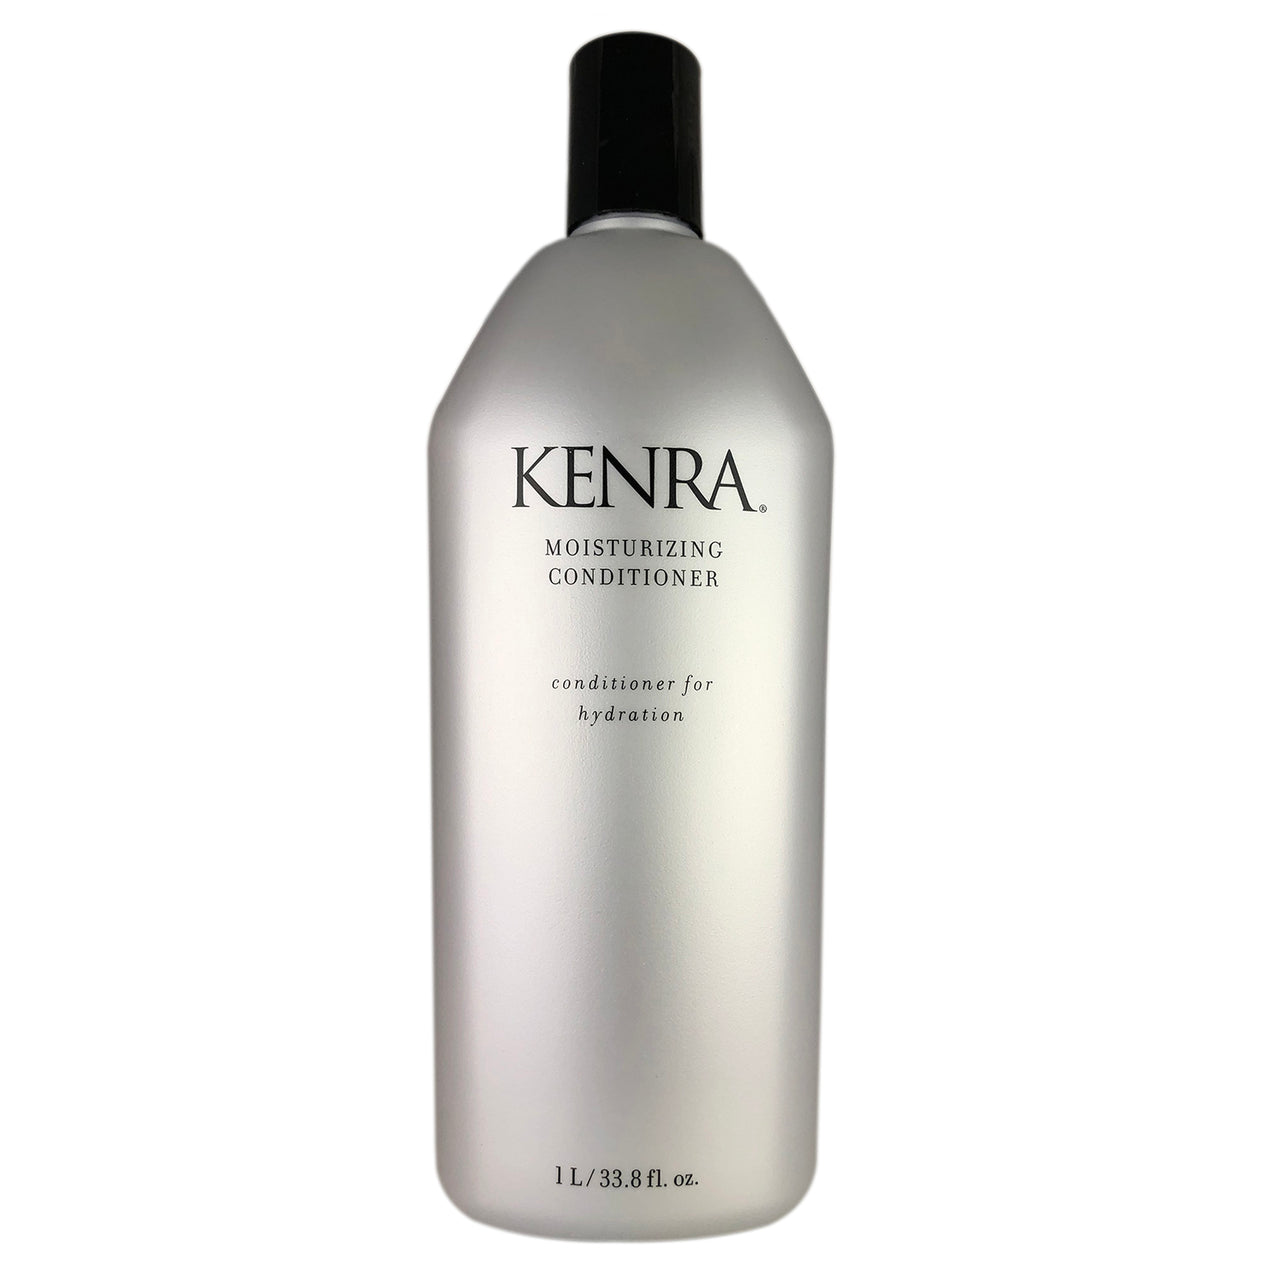 Kenra Moisturizing Conditioner Deep Penetrating Formula for Maximum Hydration 33.8 oz